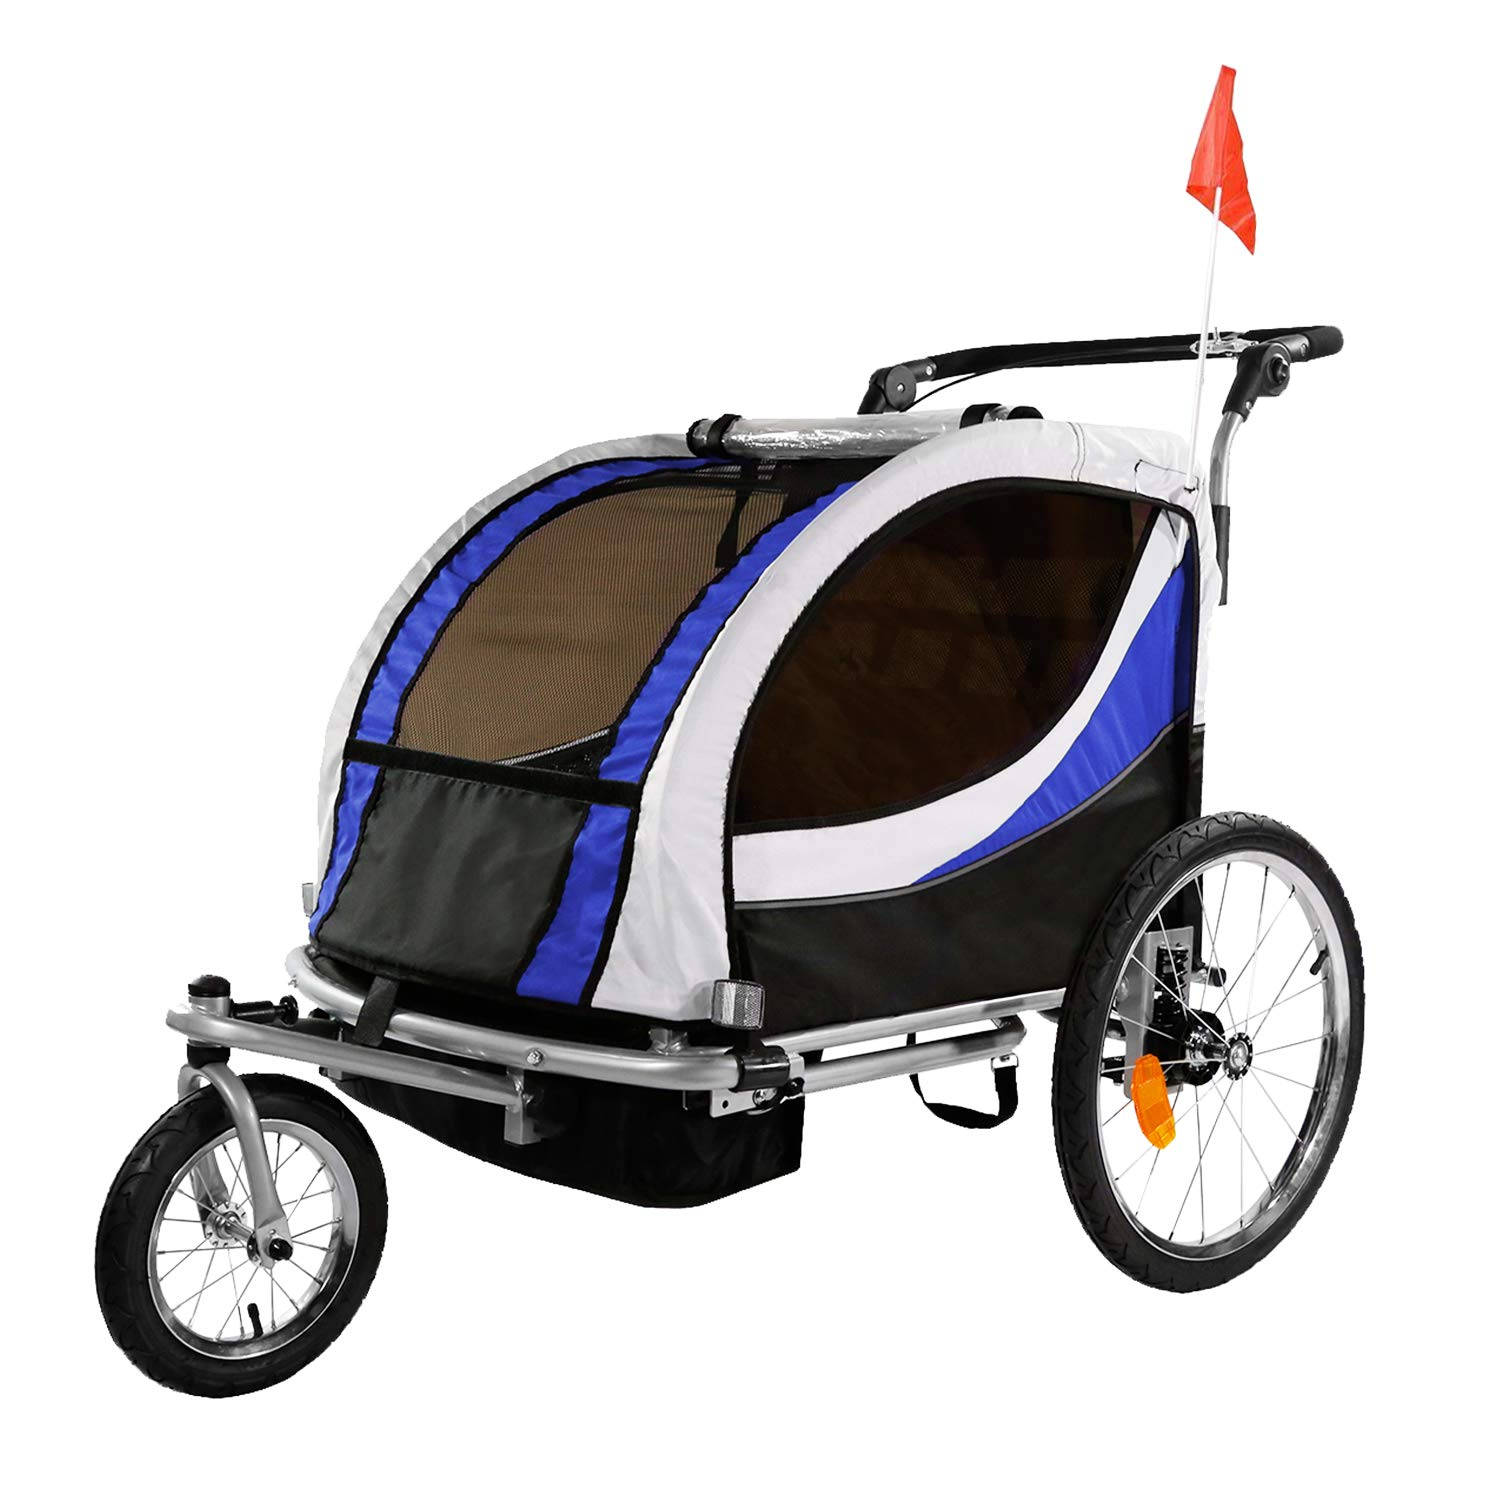 Clevr Collapsible Bicycle Stroller Suspension